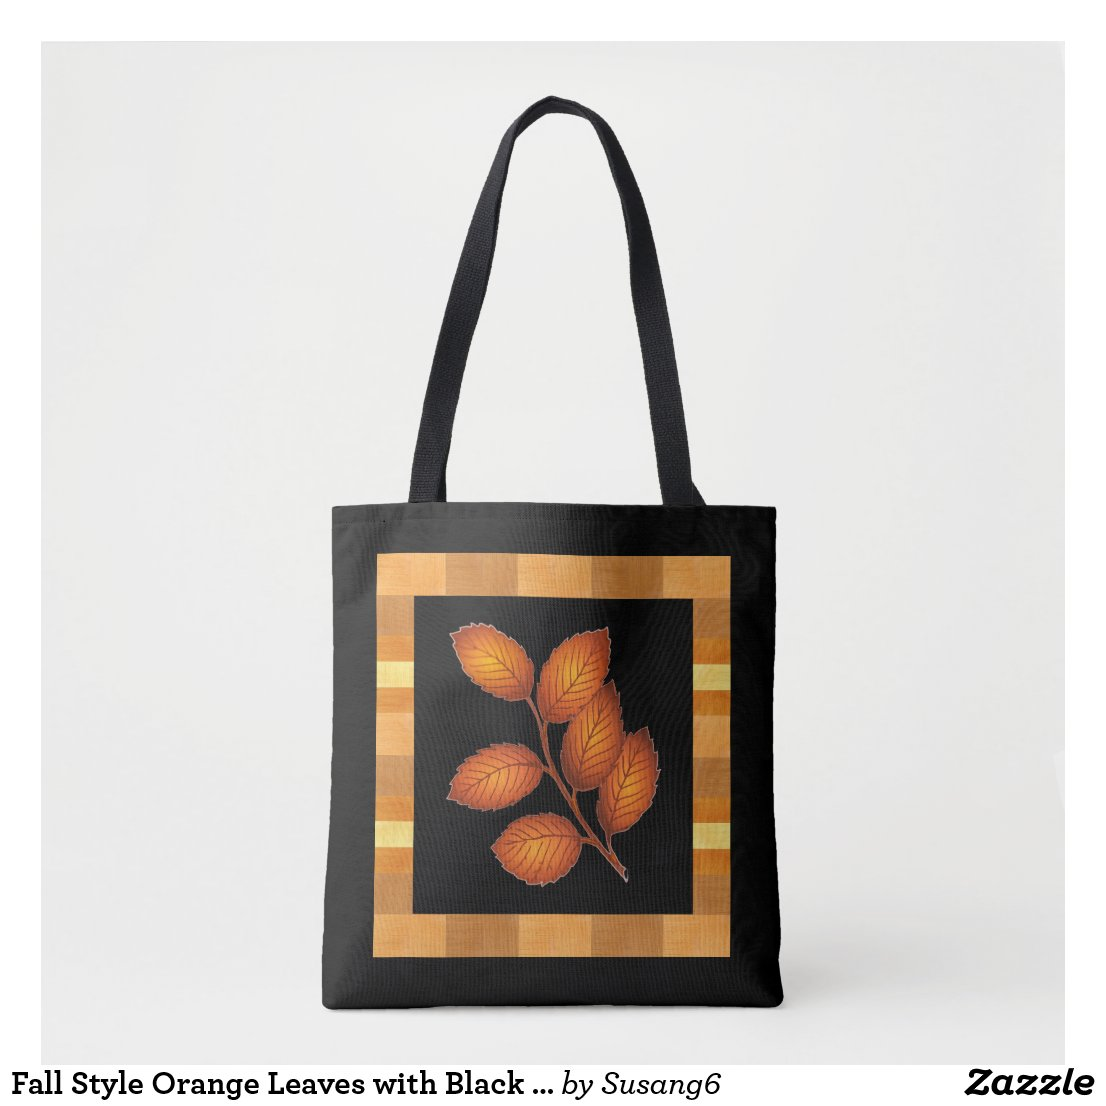 Fall Style Orange Leaves with Black Tote Bag